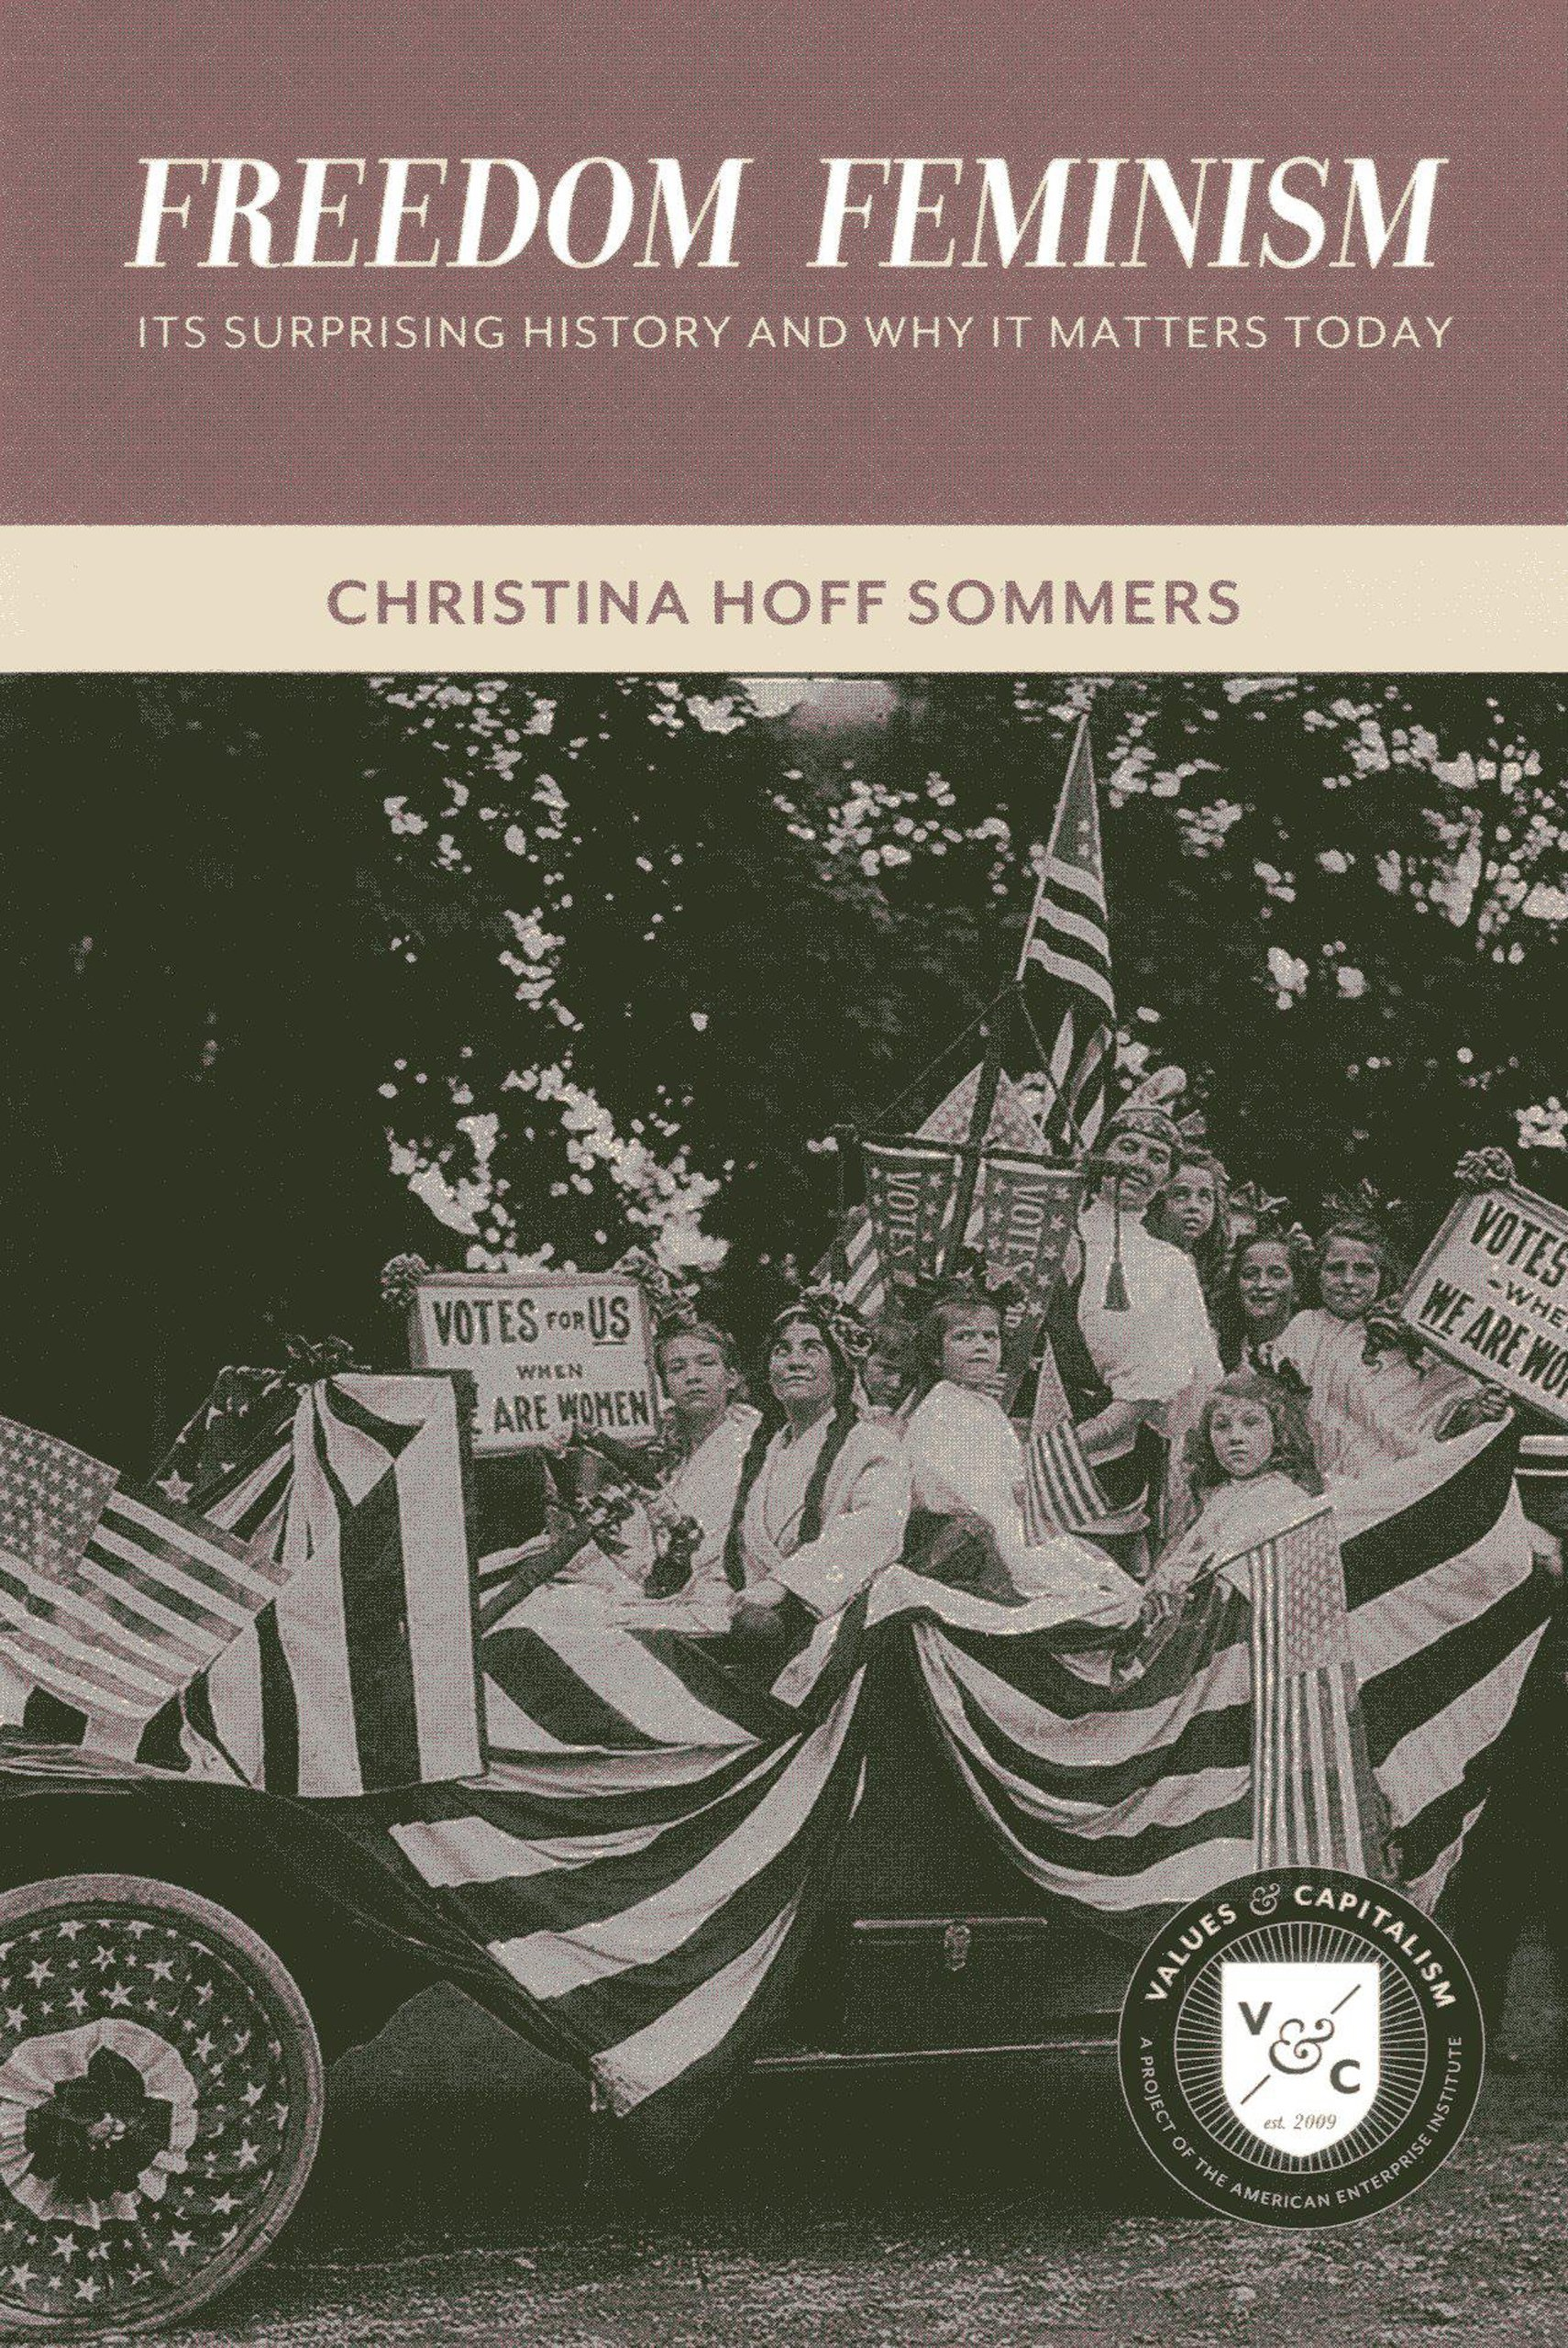 Download Freedom Feminism: Its Surprising History and Why It Matters Today (Values and Capitalism) PDF